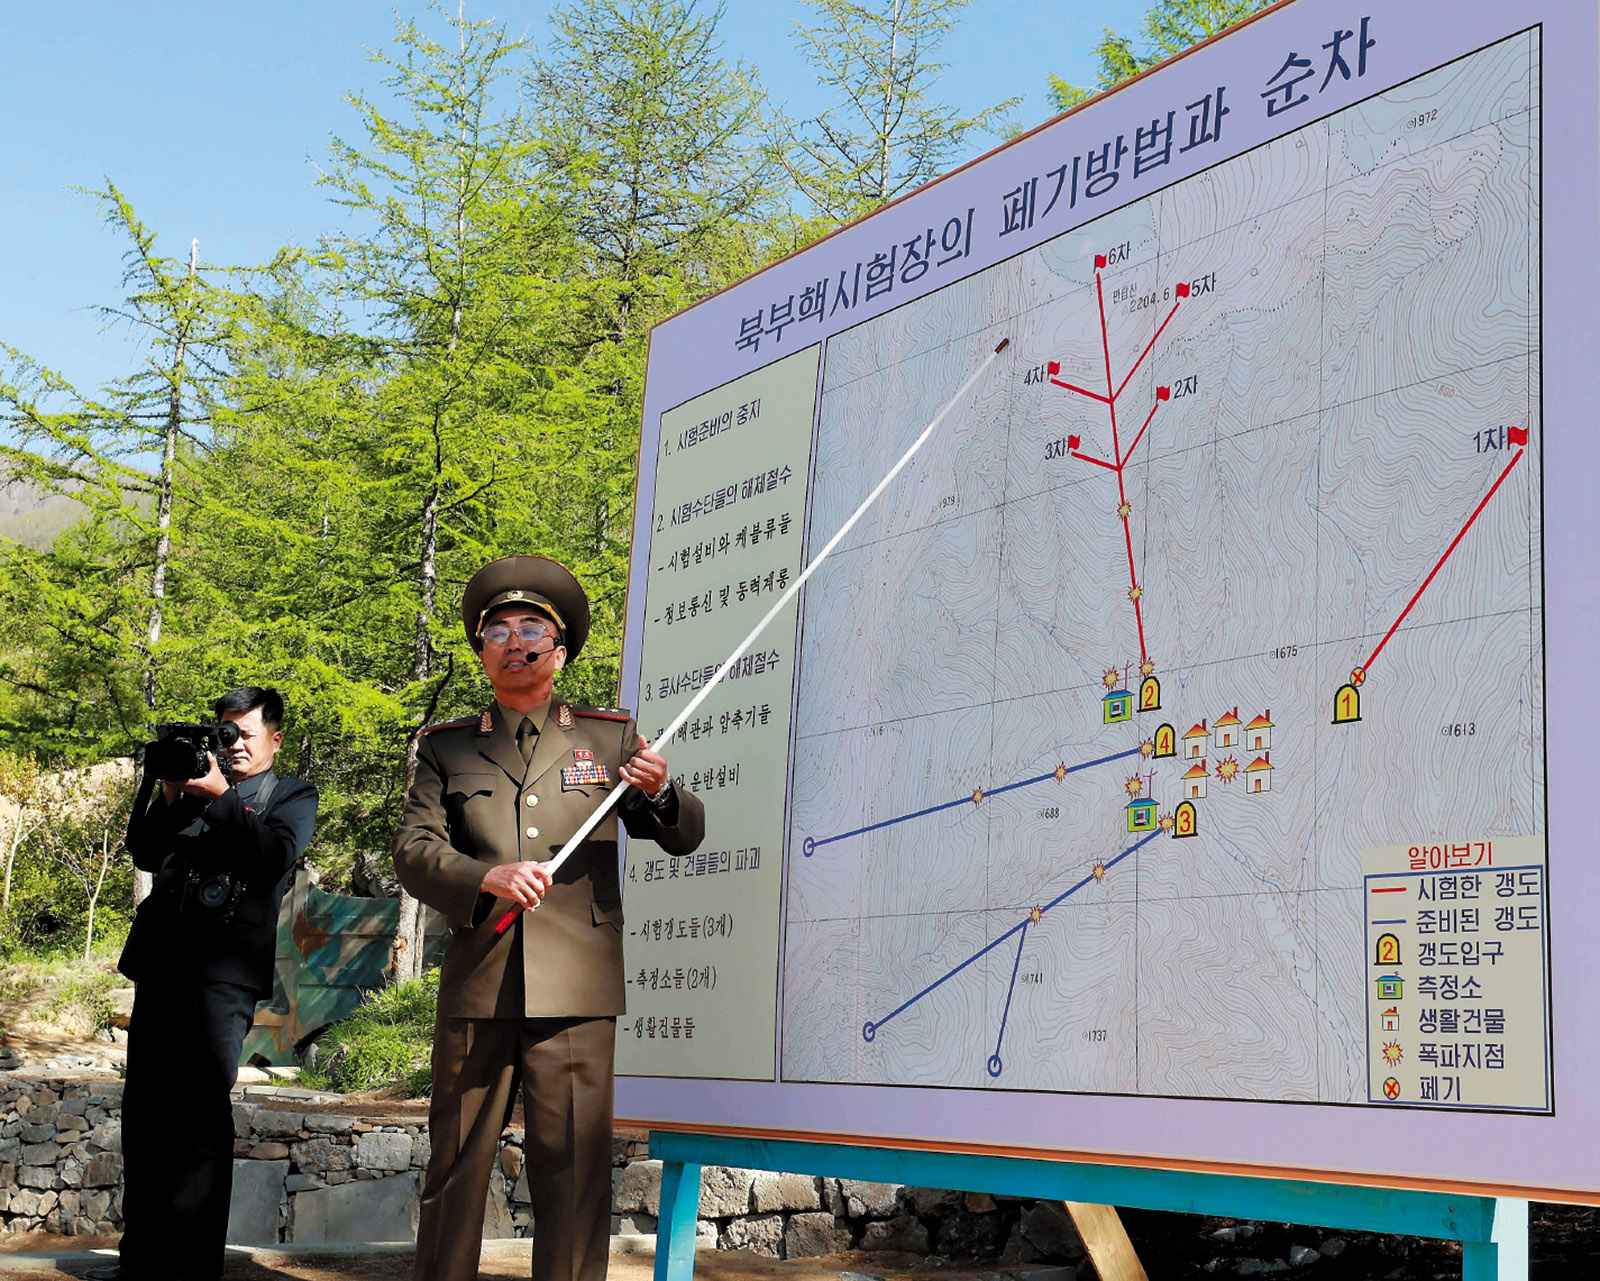 A North Korean military official discussing plans for the demolition of the Punggye-ri underground nuclear test facility, May 2018